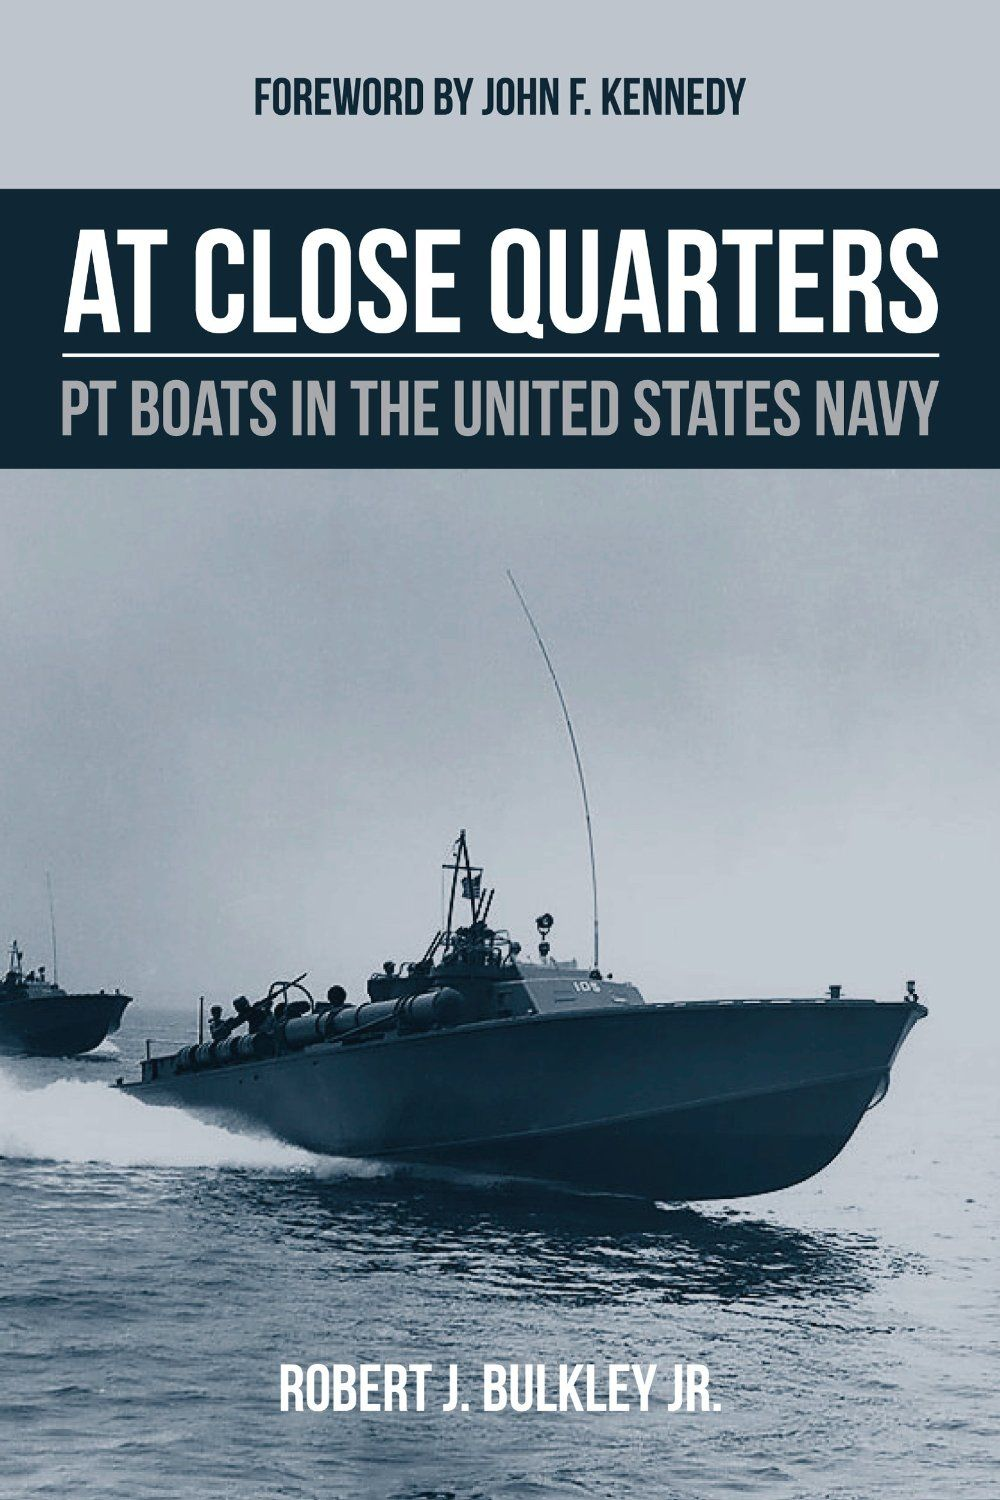 """At Close Quarters: PT Boats in the United States Navy"", by Robert J. Bulkley, John F. Kennedy, Ernest McNeill Eller.- BFD"